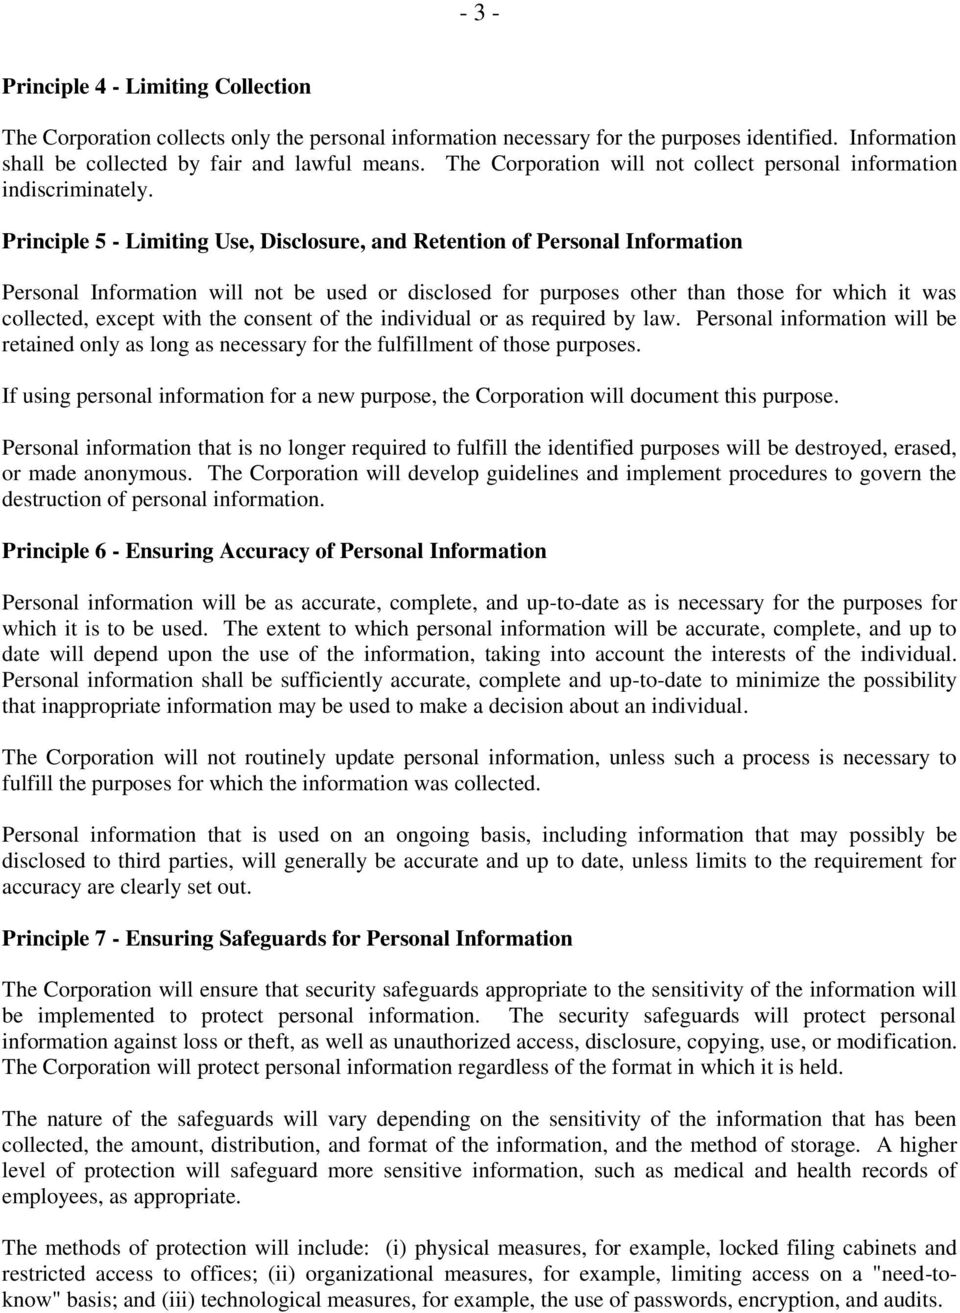 Principle 5 - Limiting Use, Disclosure, and Retention of Personal Information Personal Information will not be used or disclosed for purposes other than those for which it was collected, except with